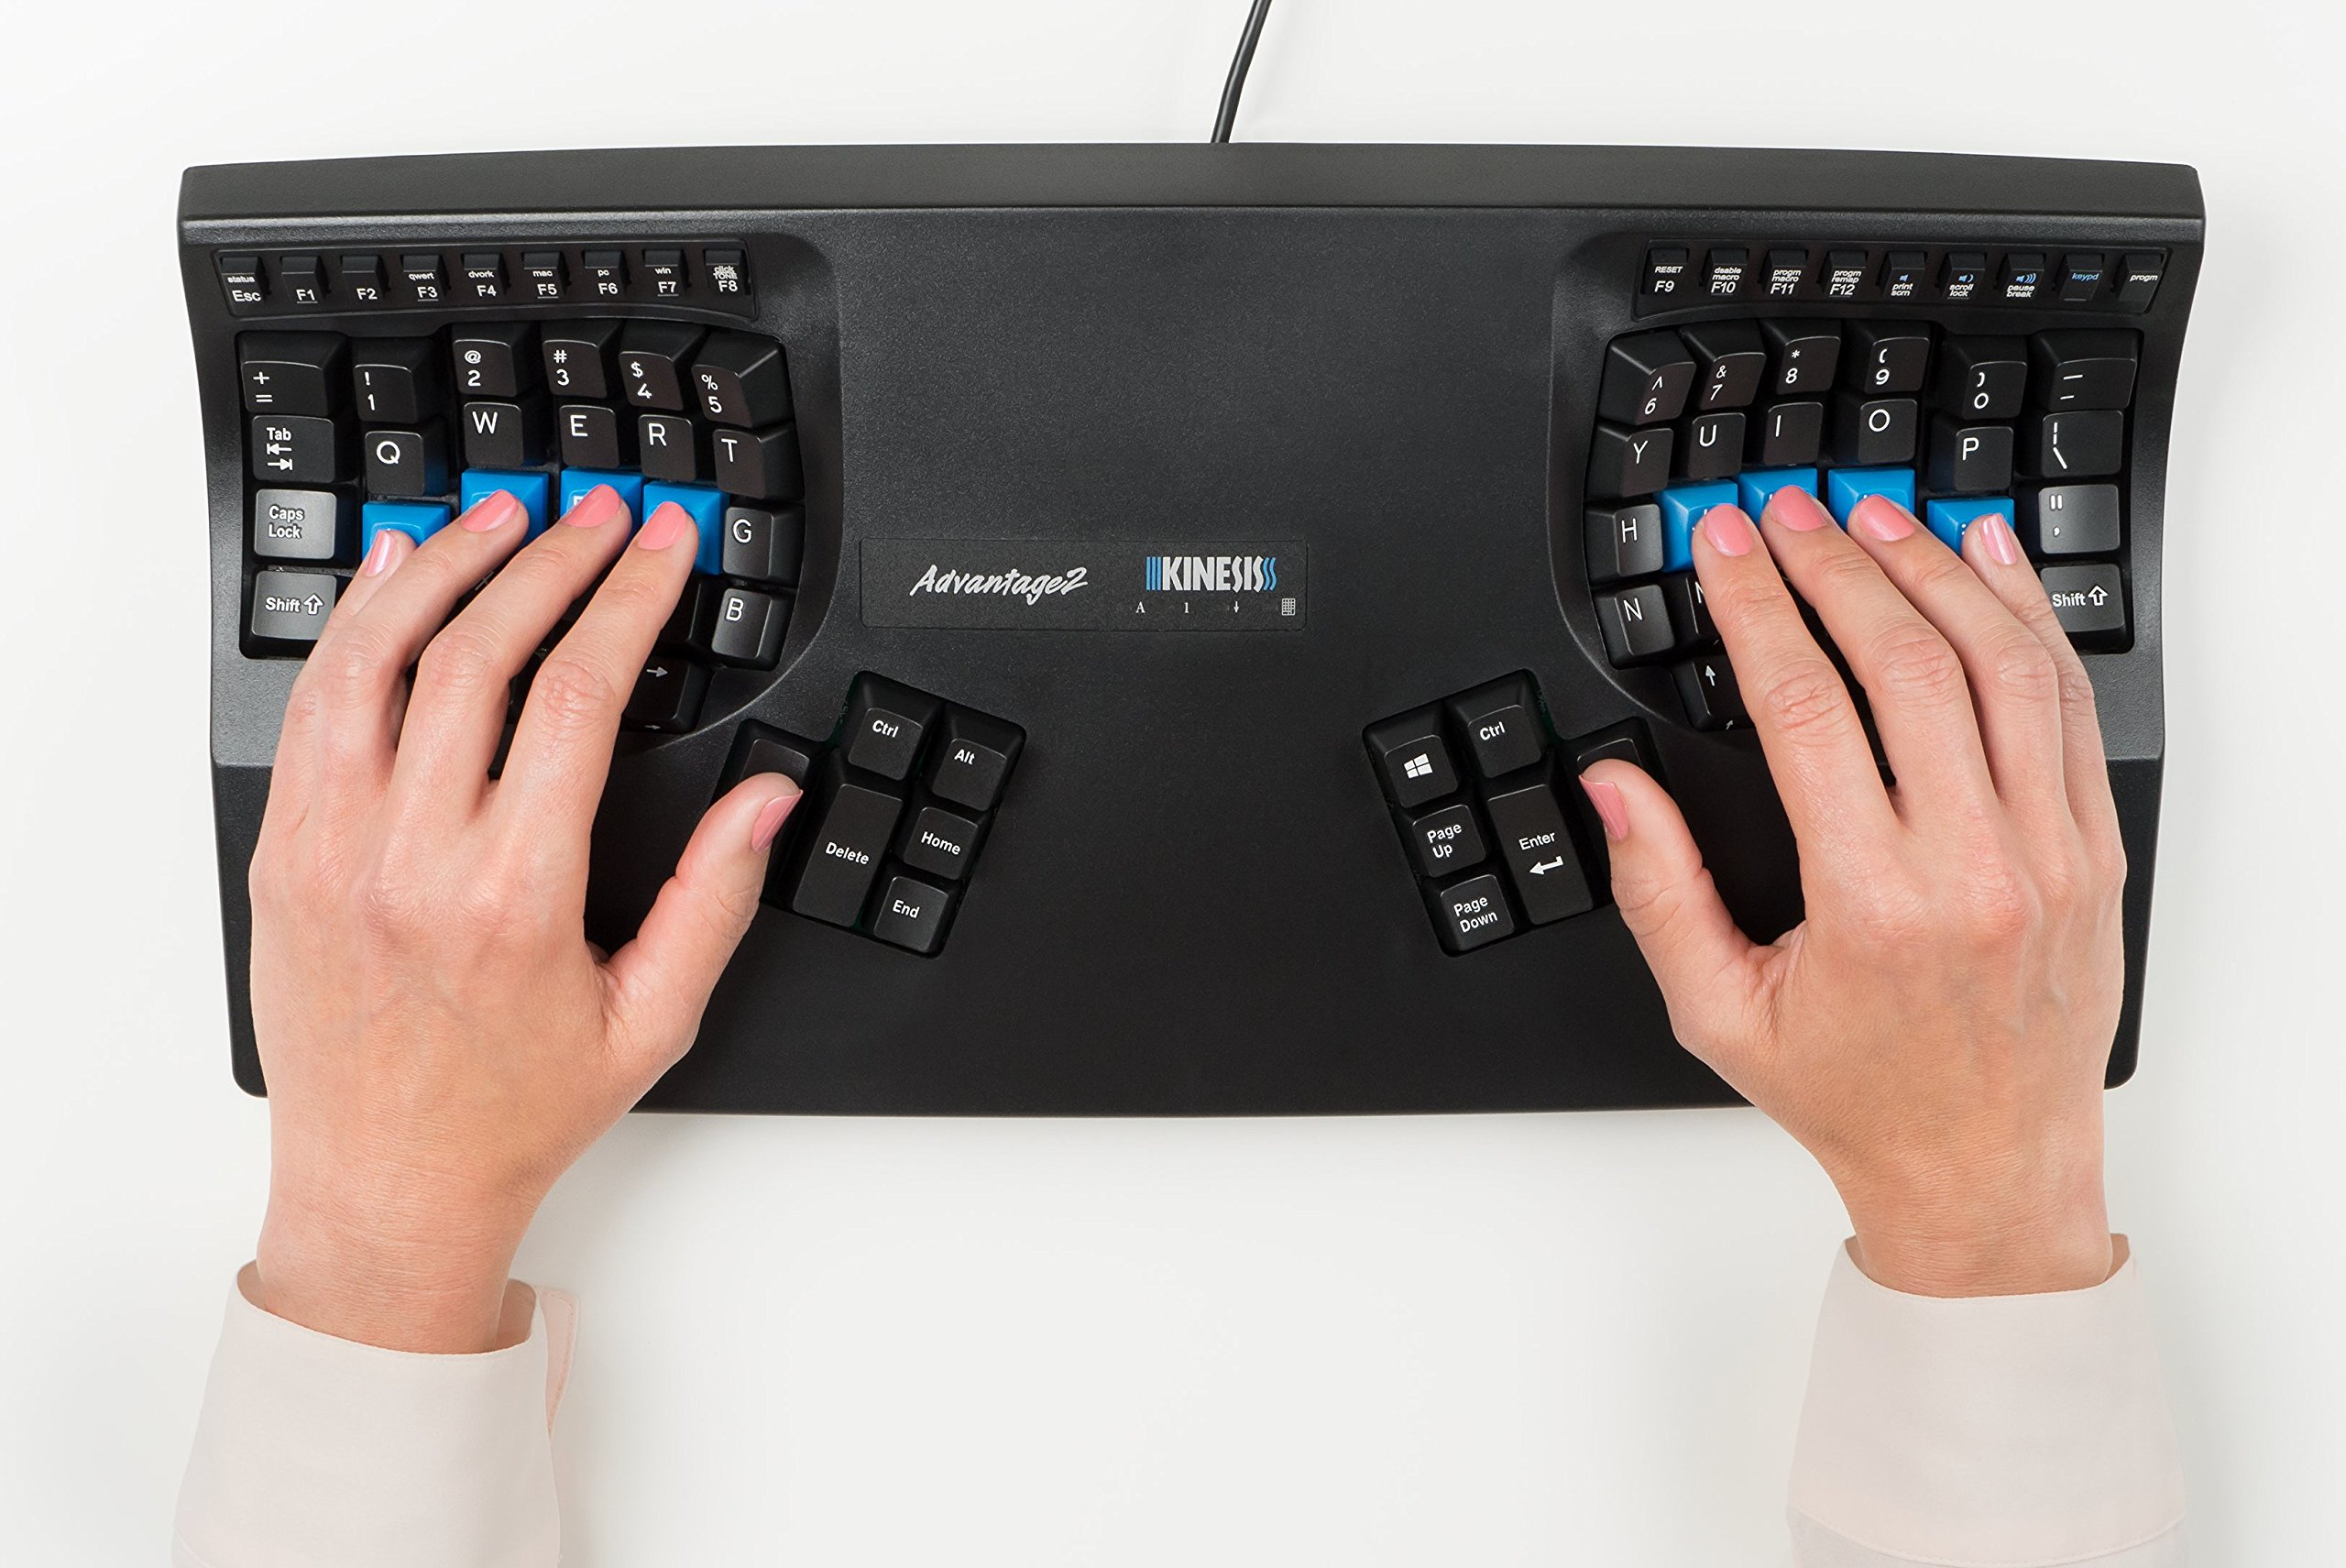 Kinesis Advantage2 Ergonomic Keyboard (KB600) by KINESIS (Image #8)